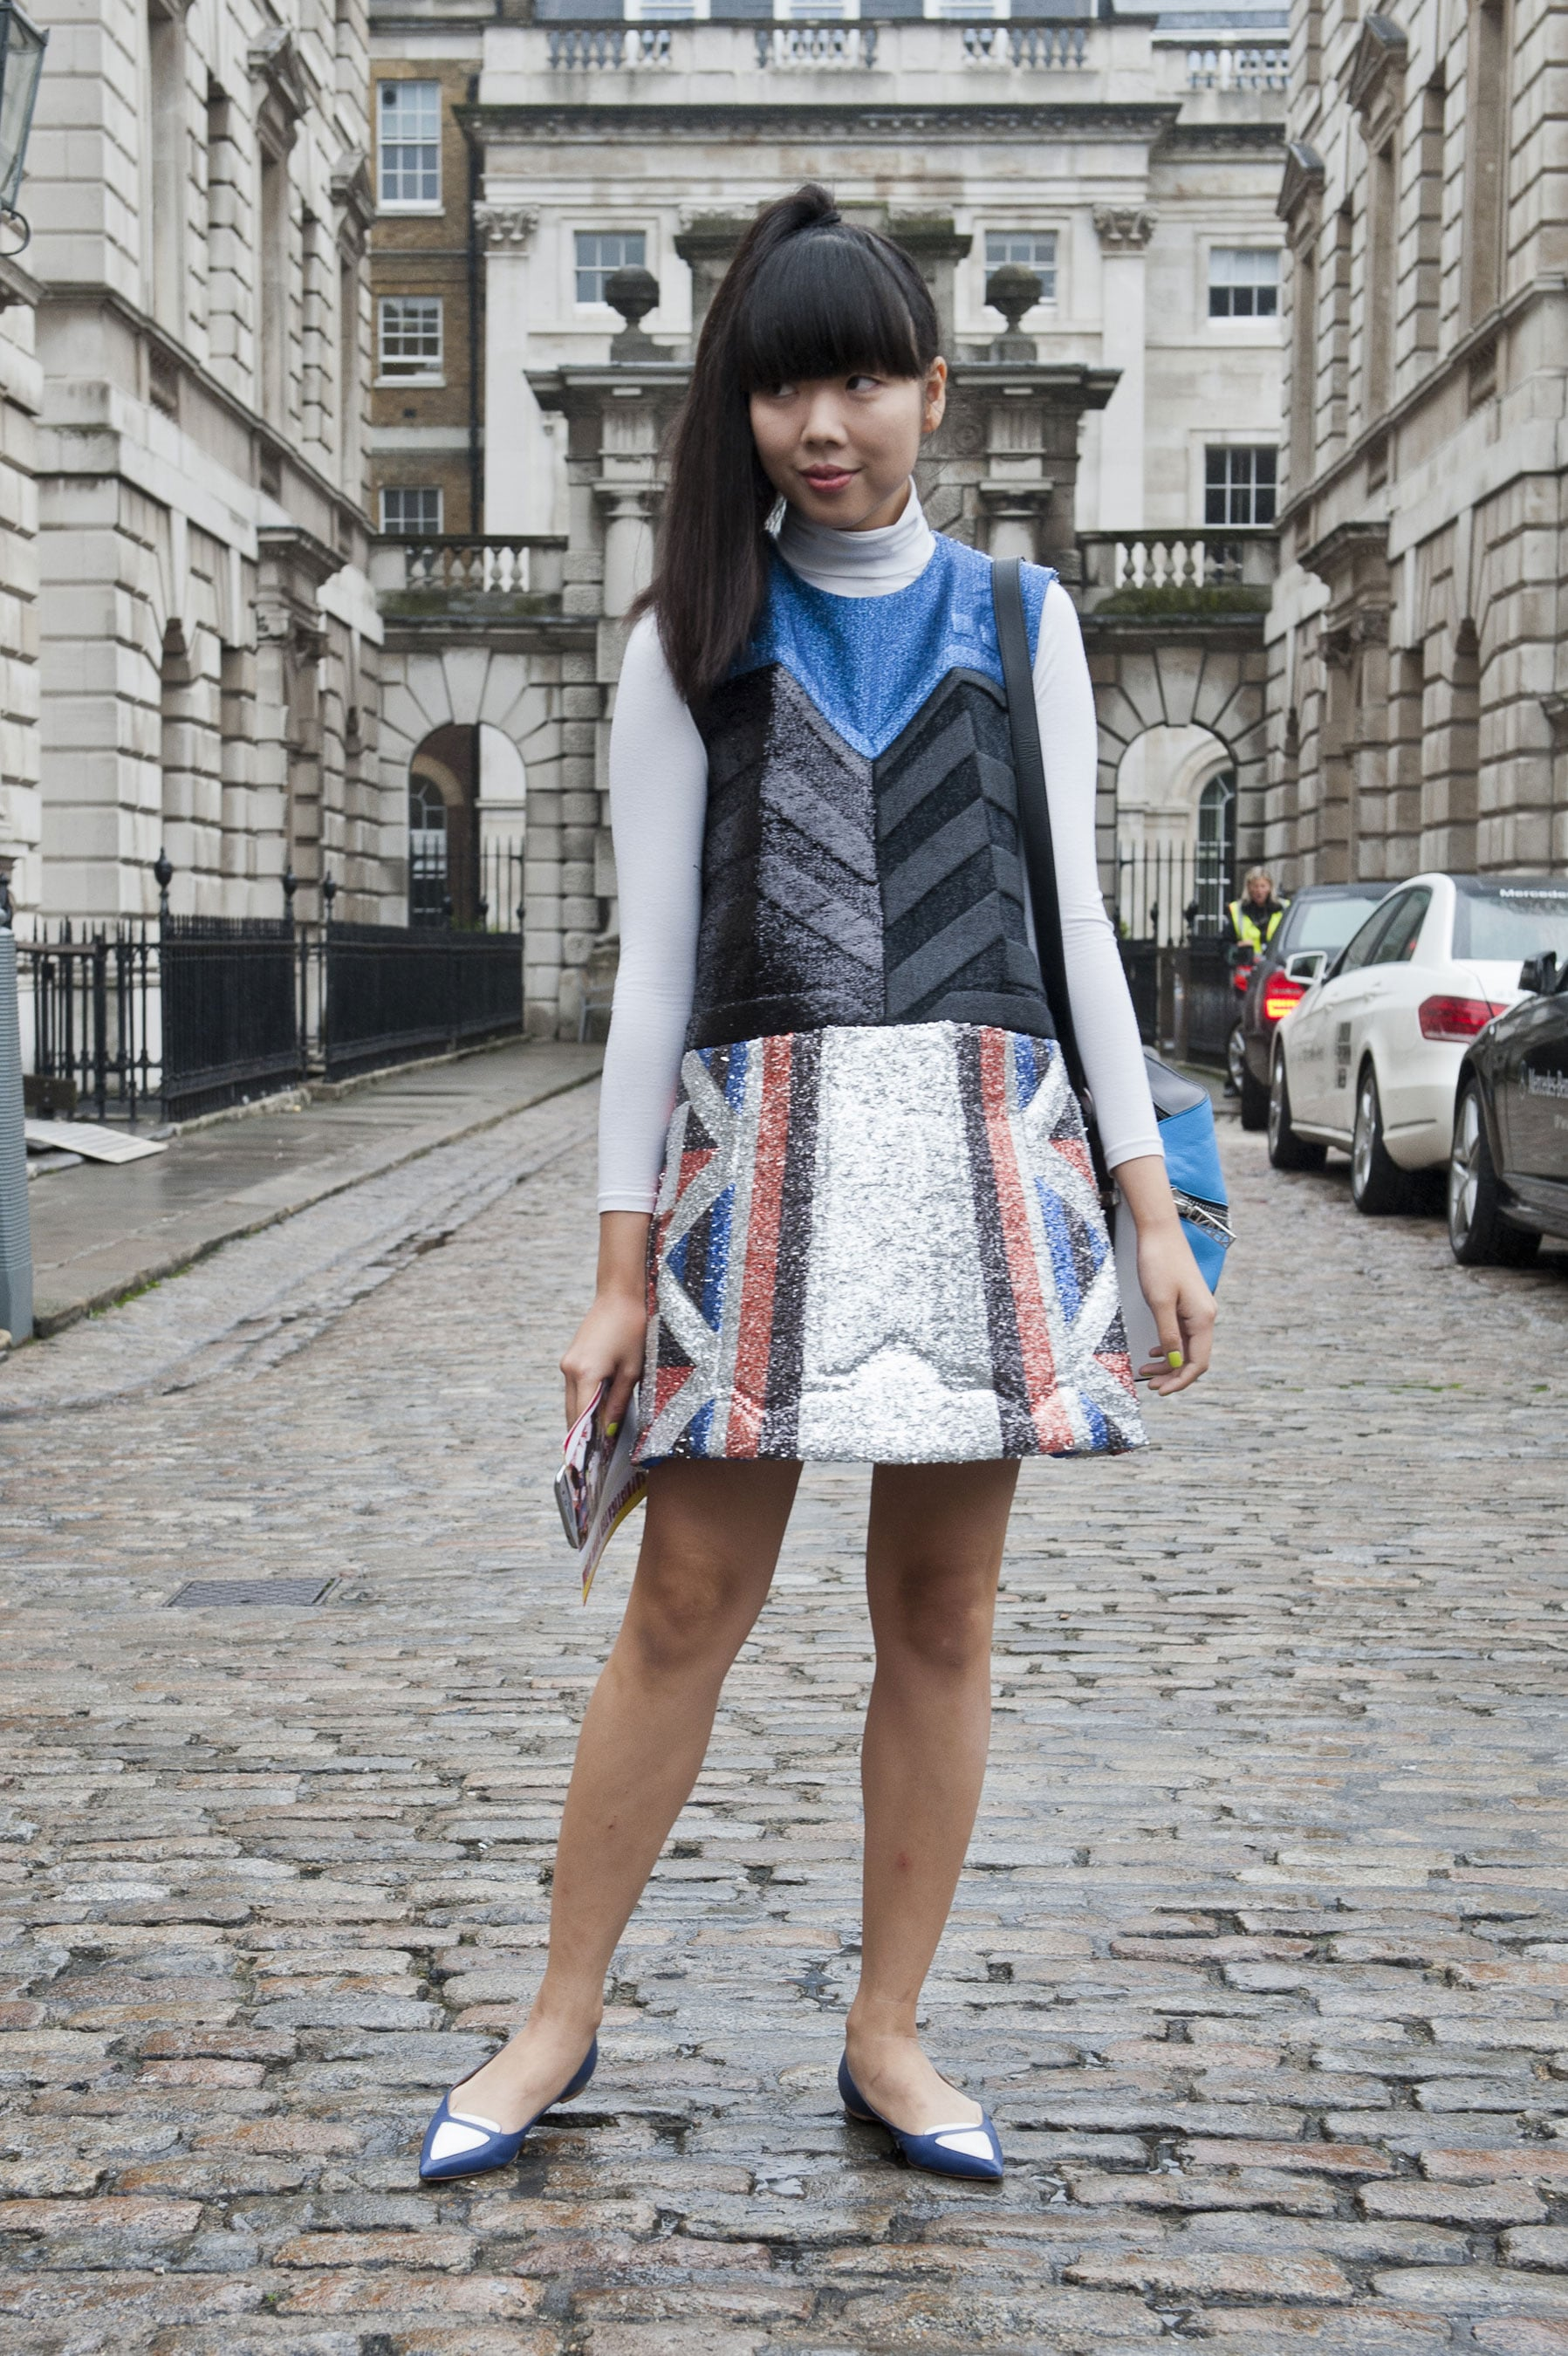 Susie Bubble said it all with her dress.